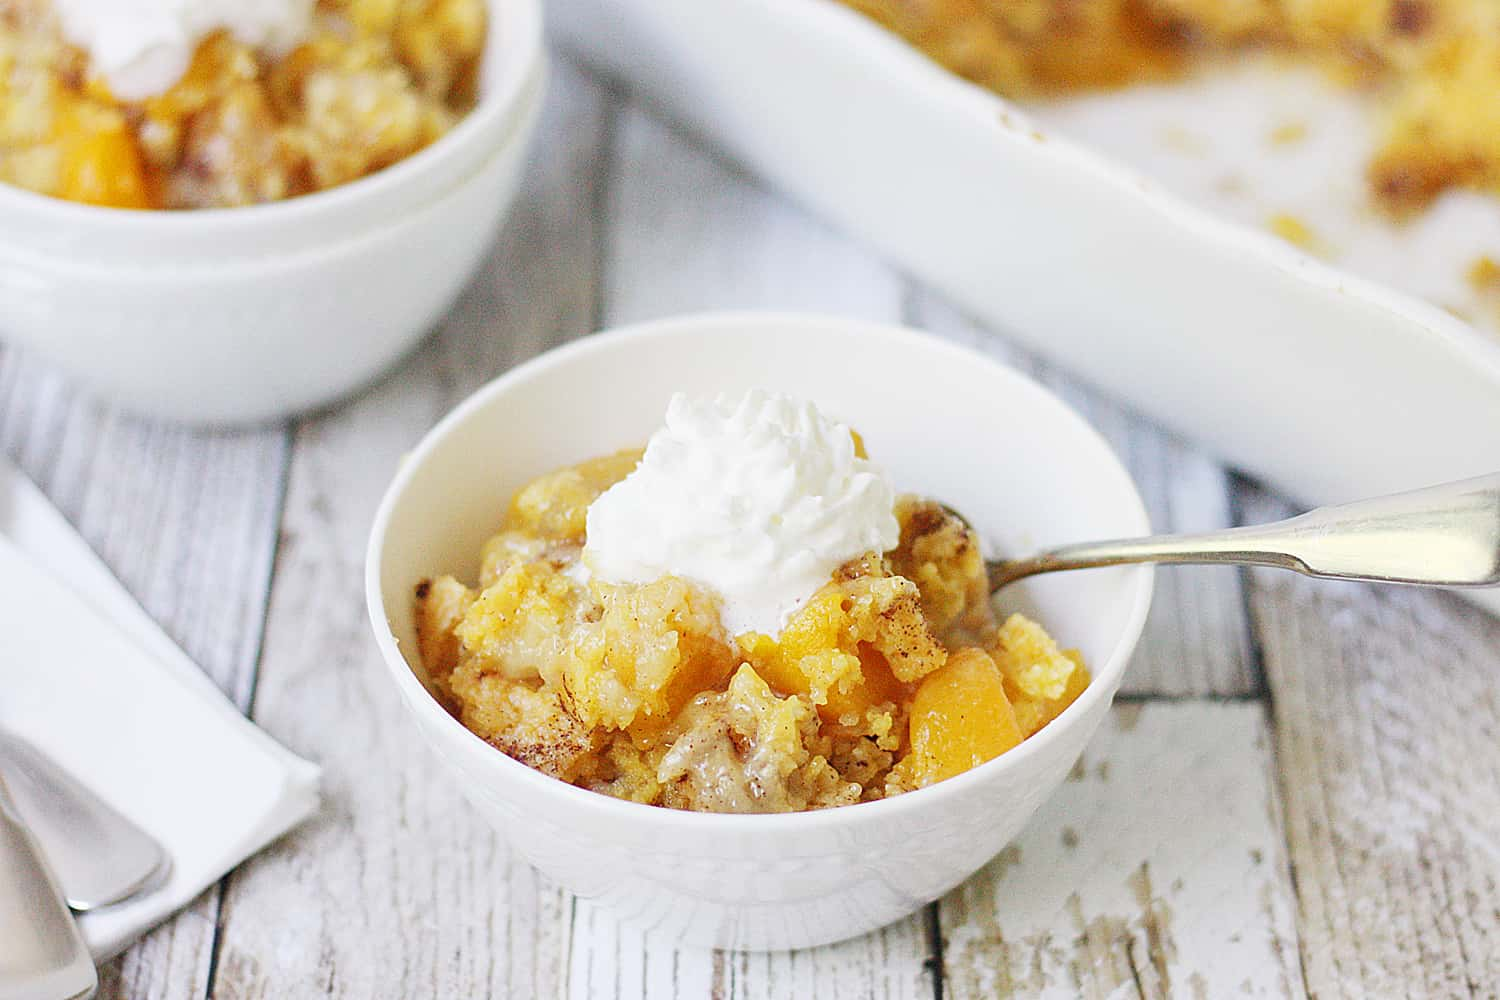 Easy Peach Cobbler Dump Cake -- Easy peach cobbler dump cake is sure to become a summer staple! This mouthwatering peach cobbler recipe requires only four ingredients and five minutes of prep! #cake #peachcobbler #dumpcake #dessert #easyrecipe #cakemix #cobbler #peach